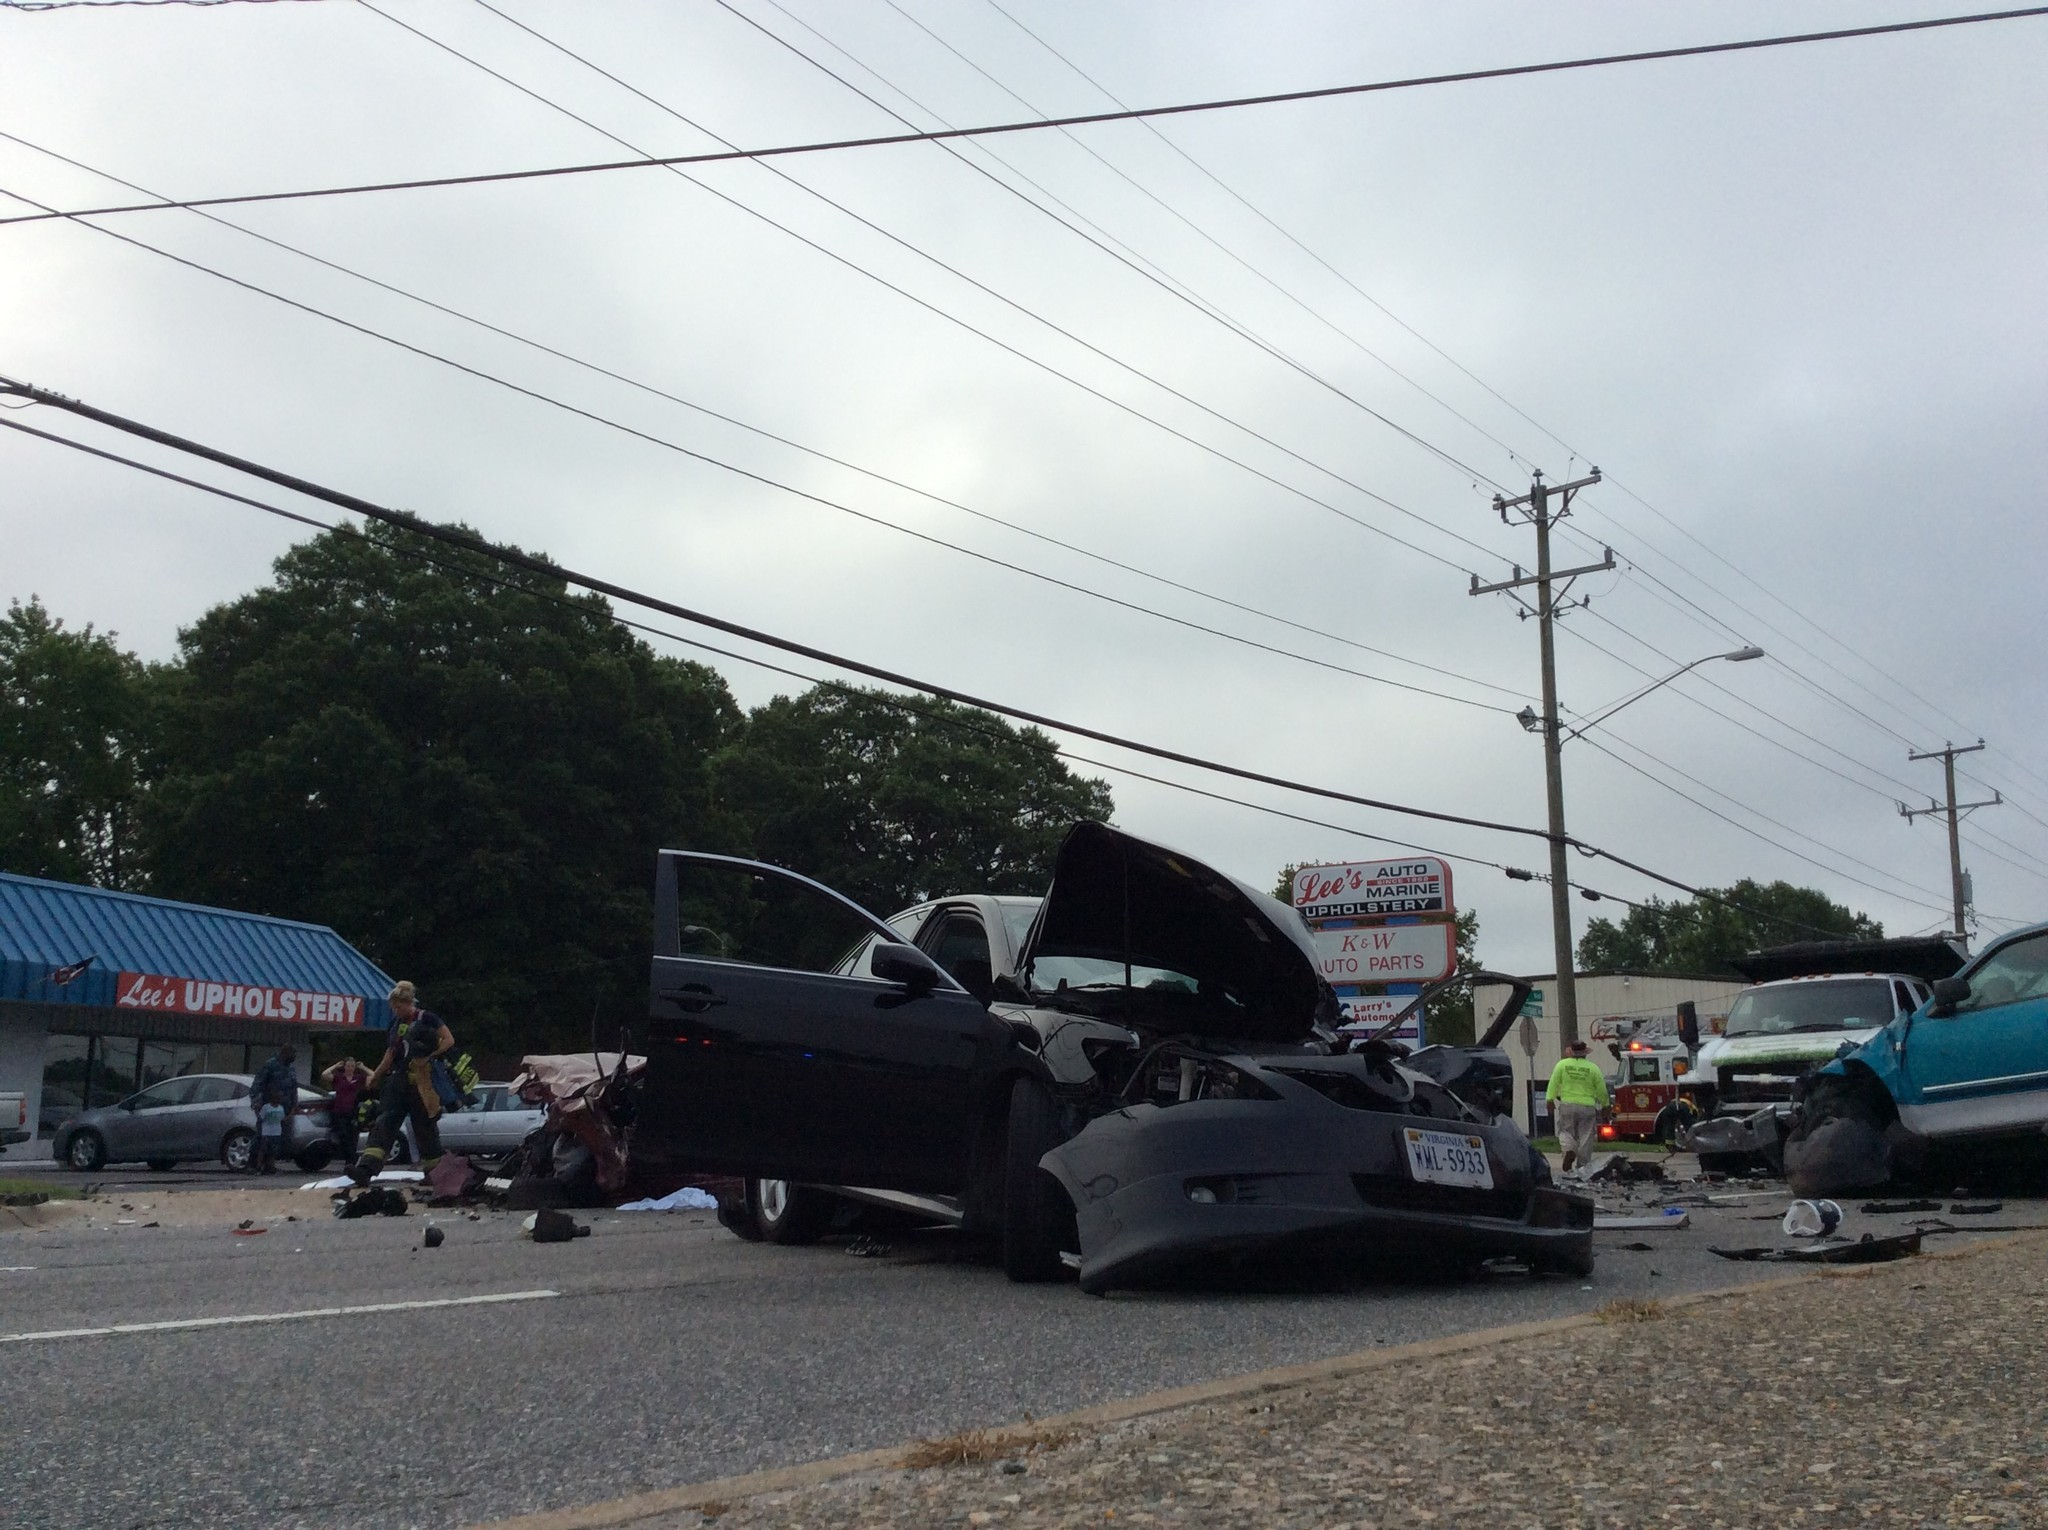 6-vehicle crash on jefferson avenue sends 4 to hospital; 1